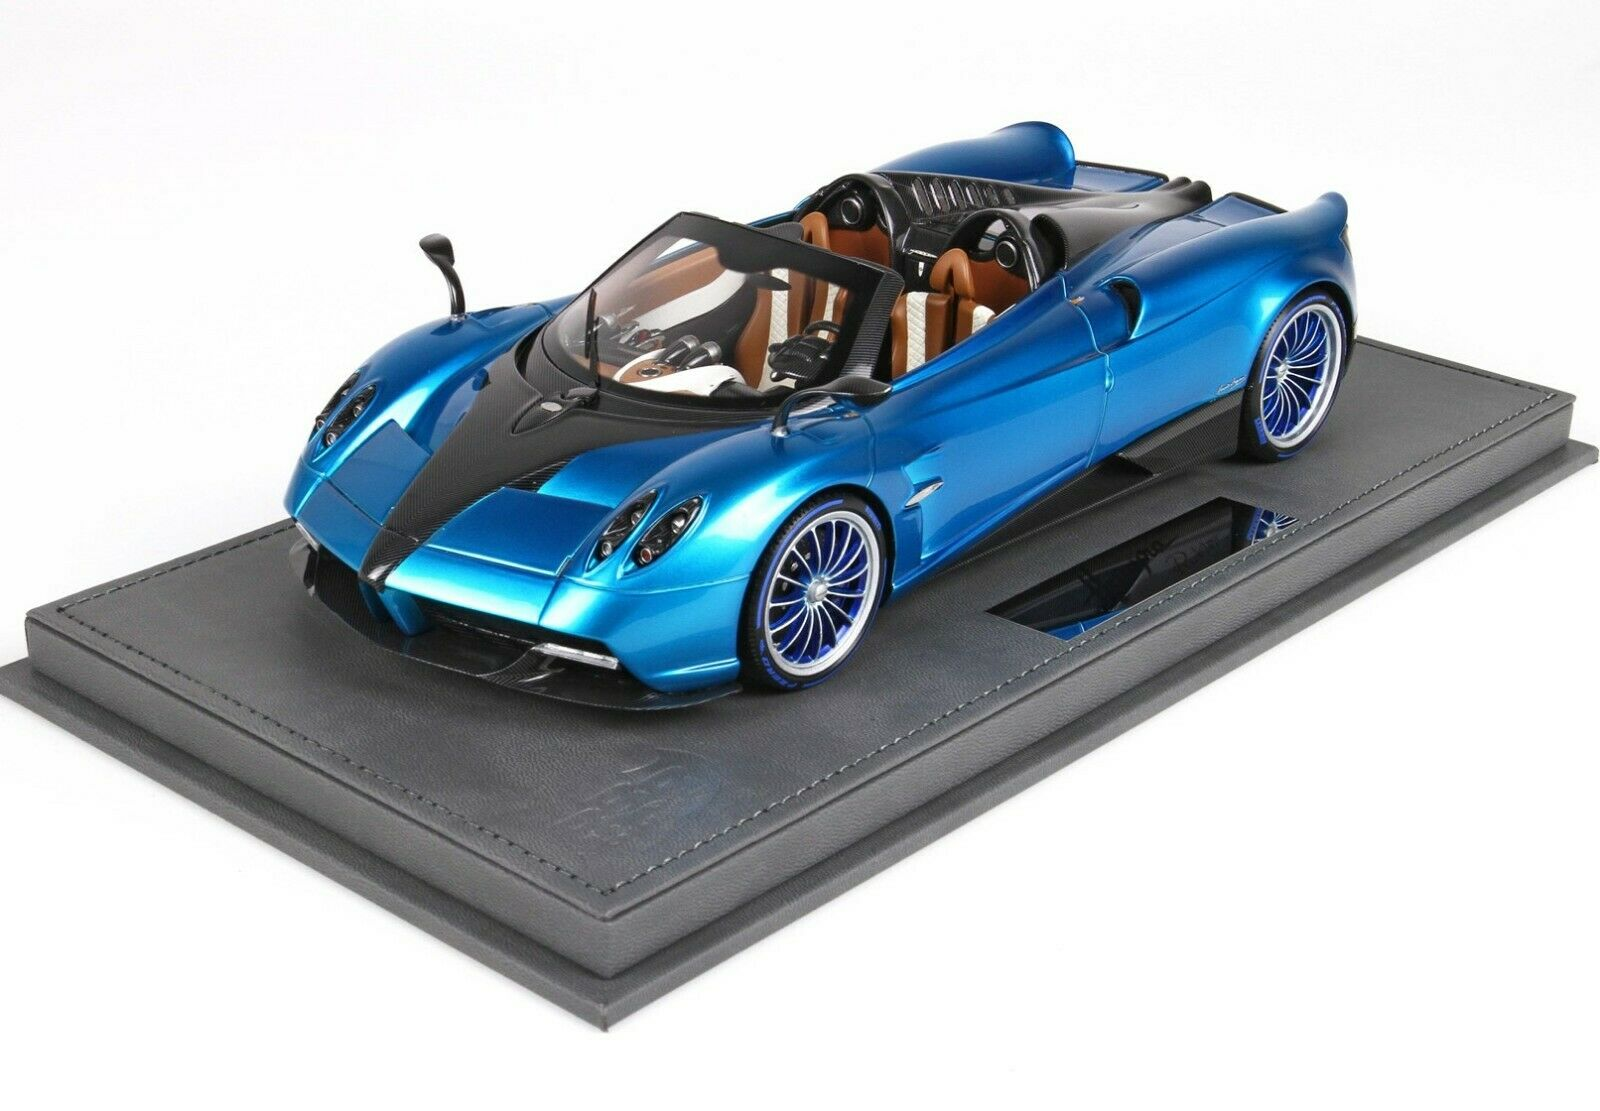 BBR Pagani Huayra Roadster bleu Emperor 2017 with Showcase 1 18